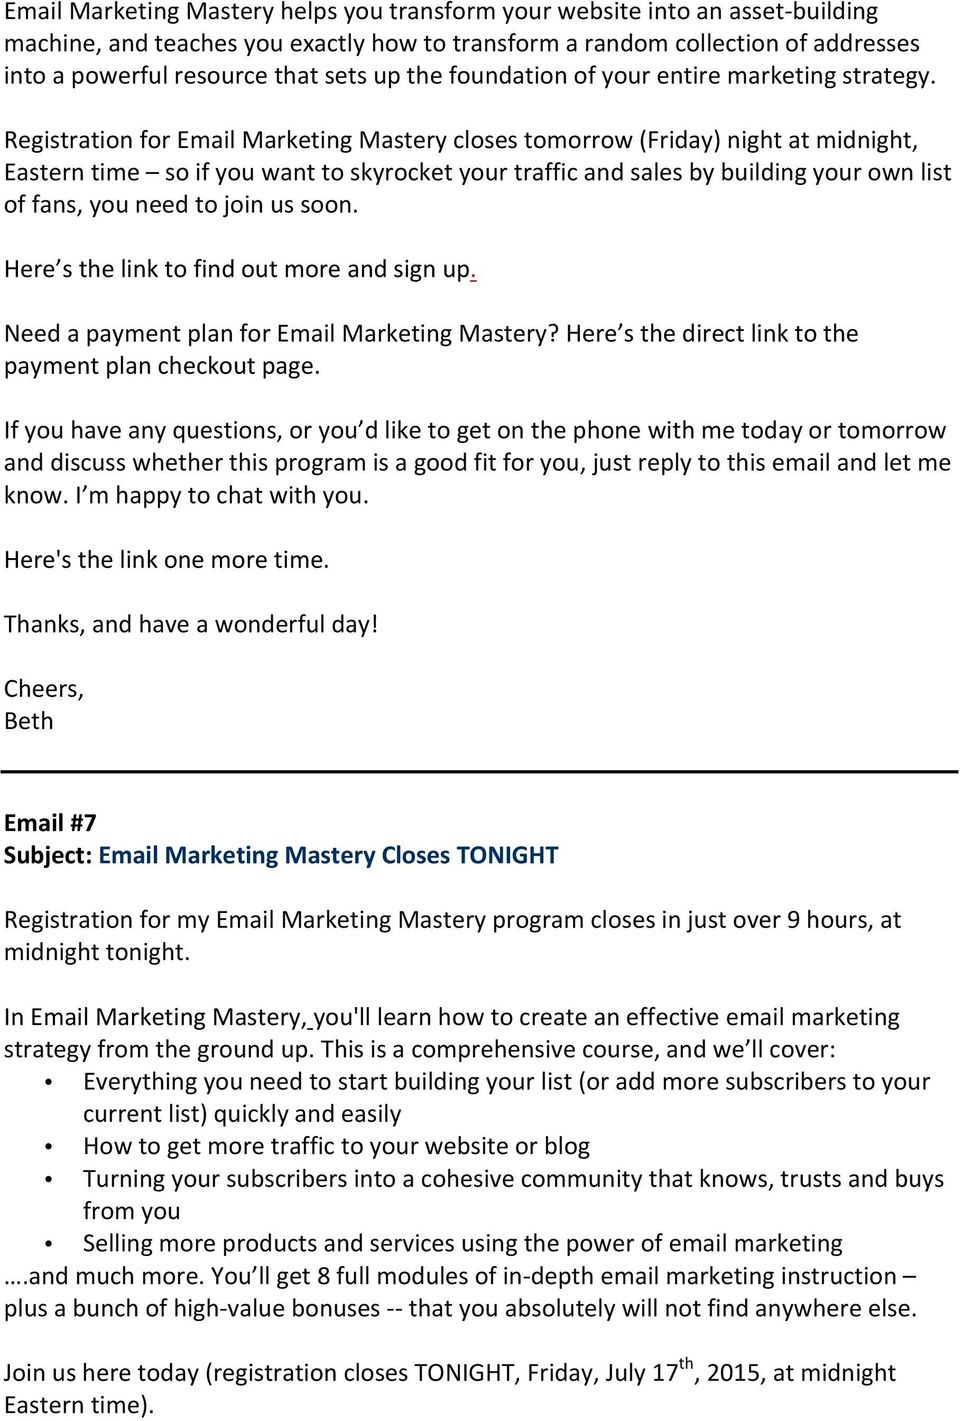 Registration for Email Marketing Mastery closes tomorrow (Friday) night at midnight, Eastern time so if you want to skyrocket your traffic and sales by building your own list of fans, you need to